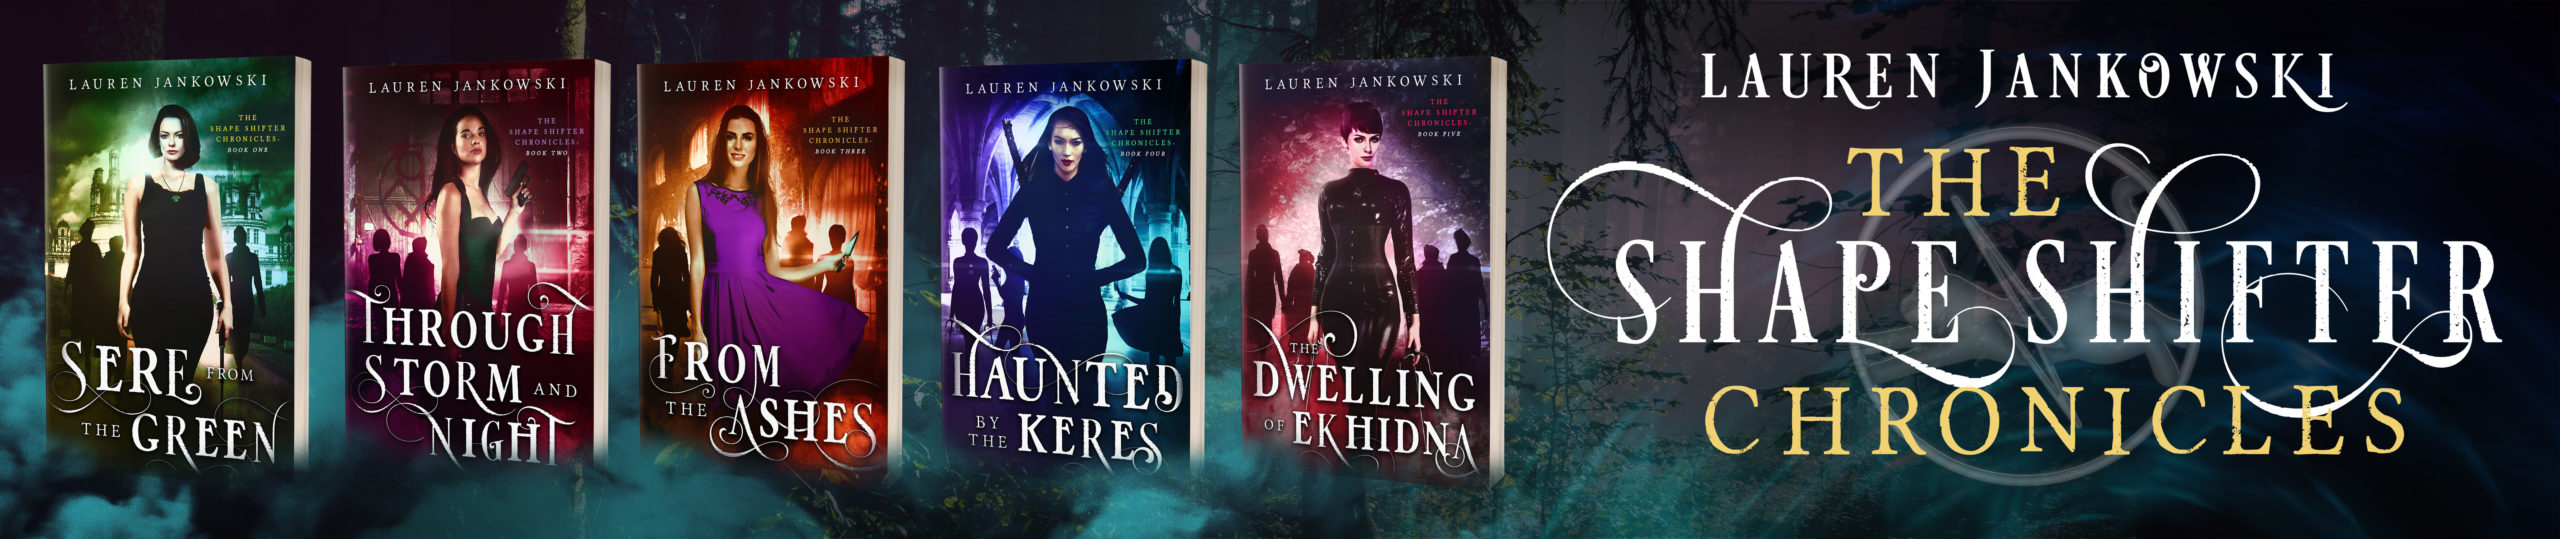 The Shape Shifter Chronicles by Lauren Jankowski